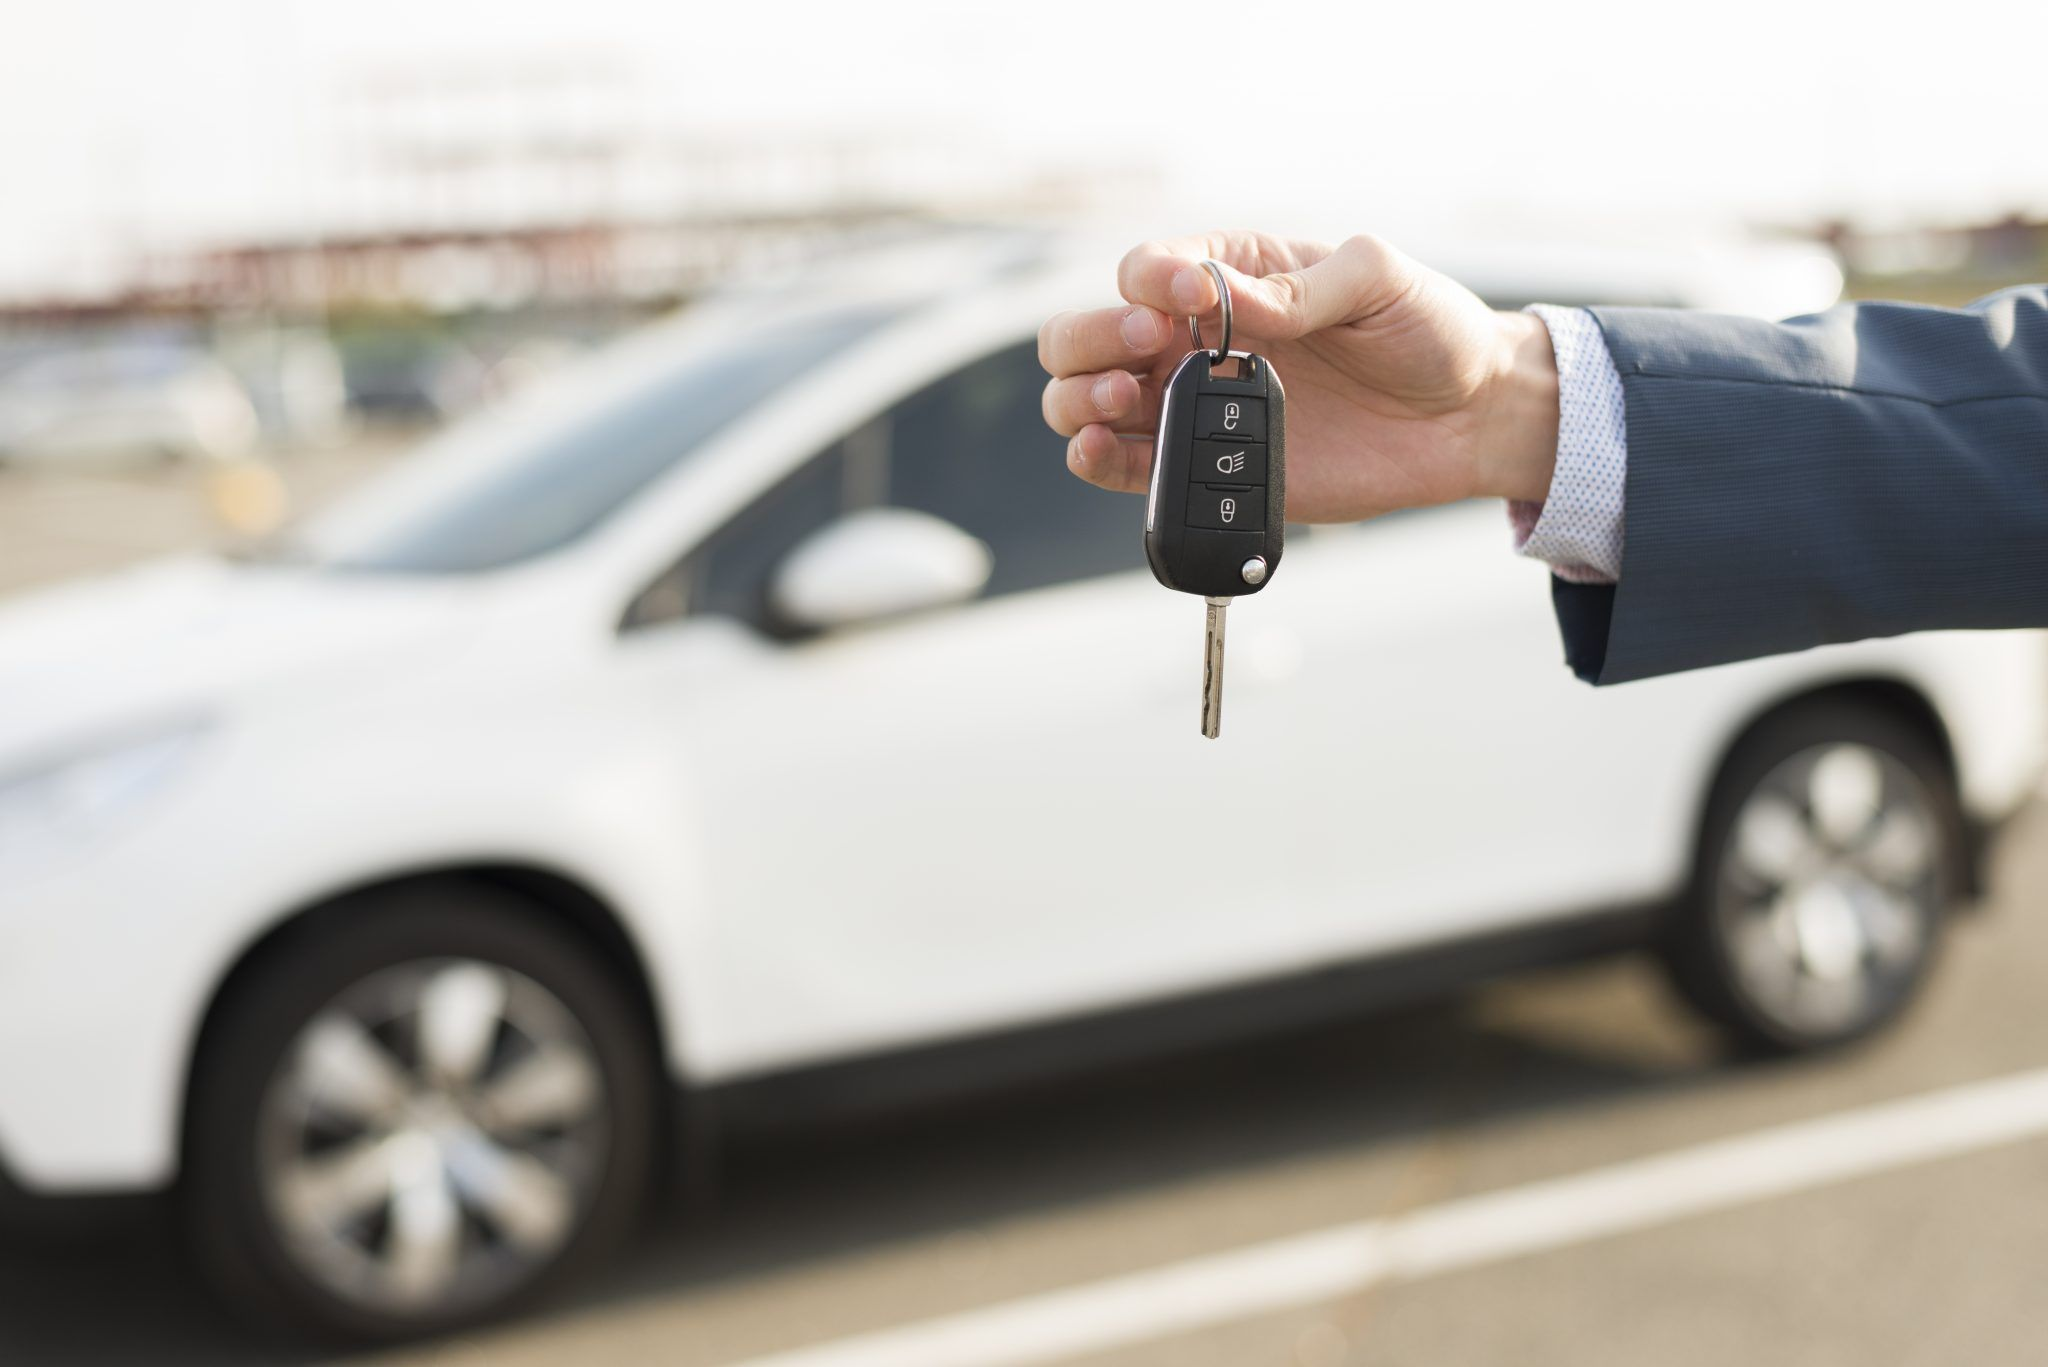 Used Car Buying Tips Should You Buy From a Private Seller